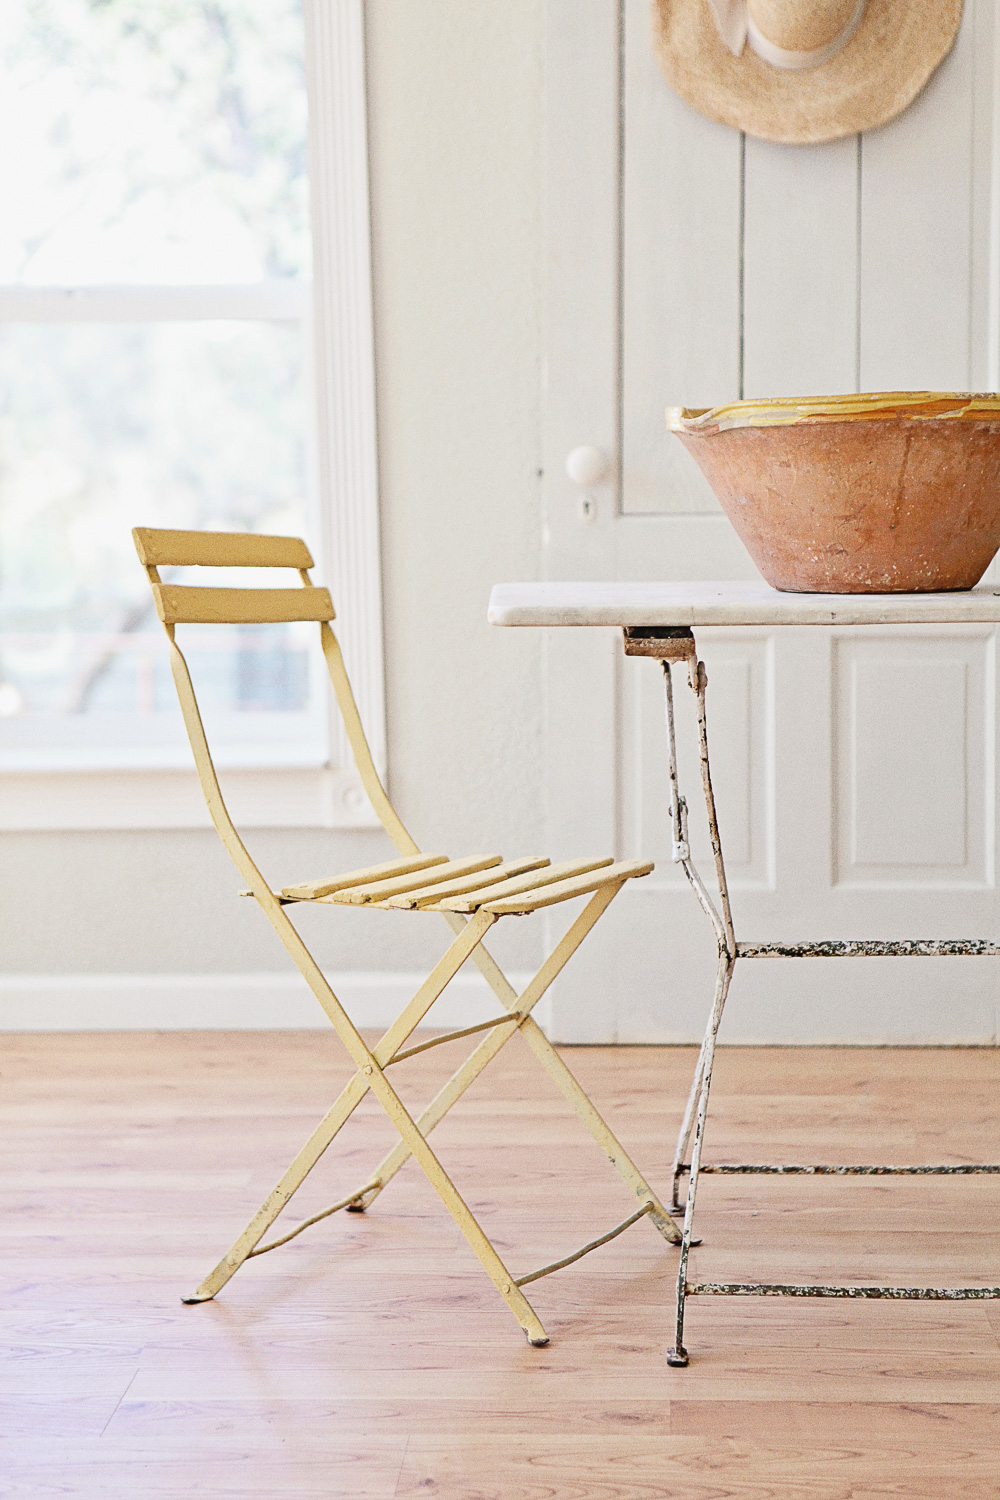 Chair Painted in Miss Mustard Seed's Milk Paint in the Colour Mustard Seed Yellow